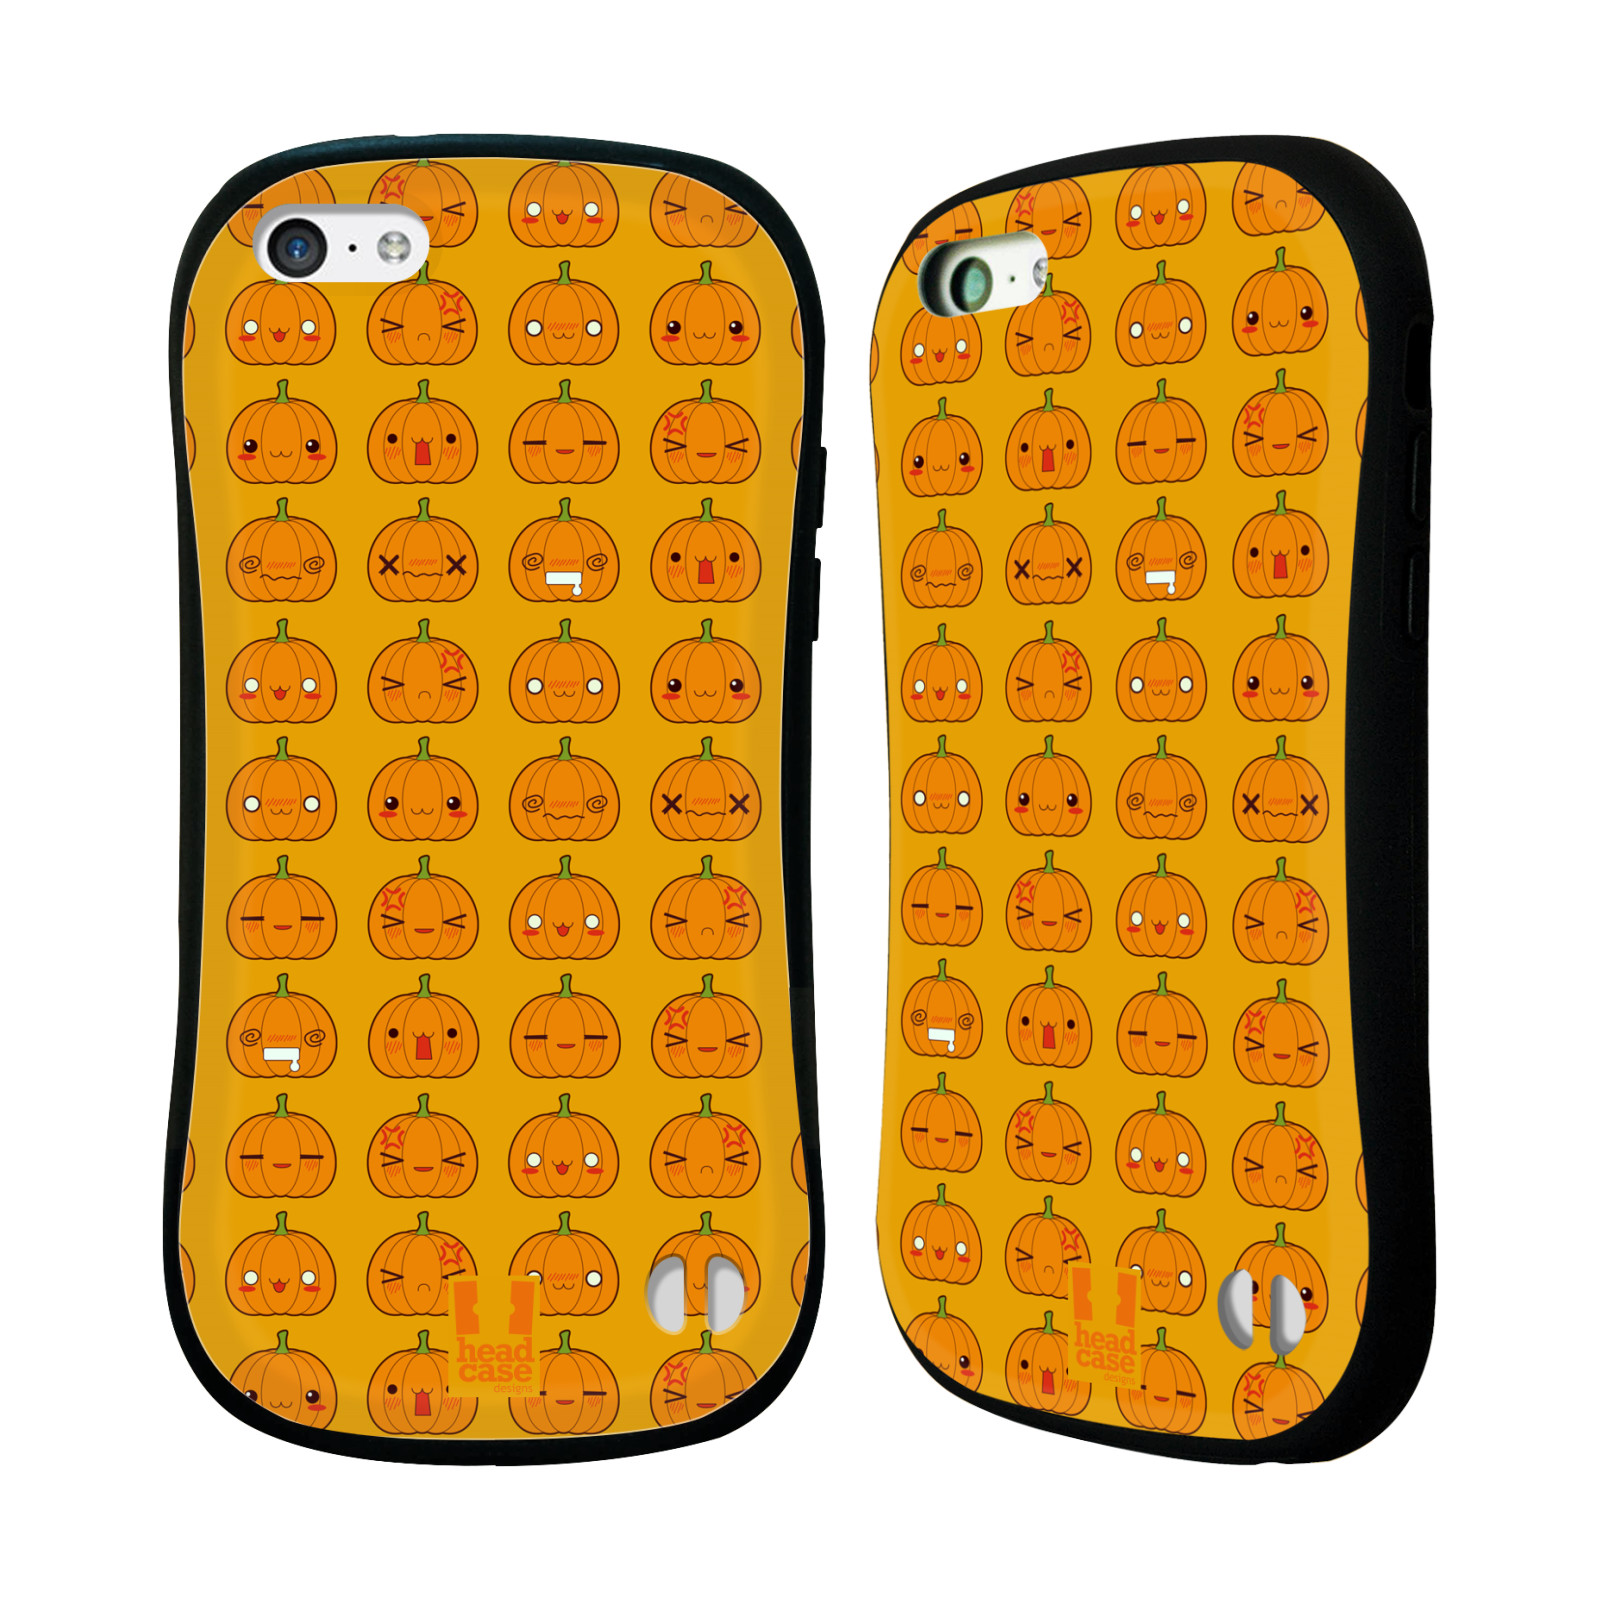 HEAD-CASE-DESIGNS-HALLOWEEN-KAWAII-HYBRID-TPU-BACK-CASE-FOR-APPLE-iPHONE-5C